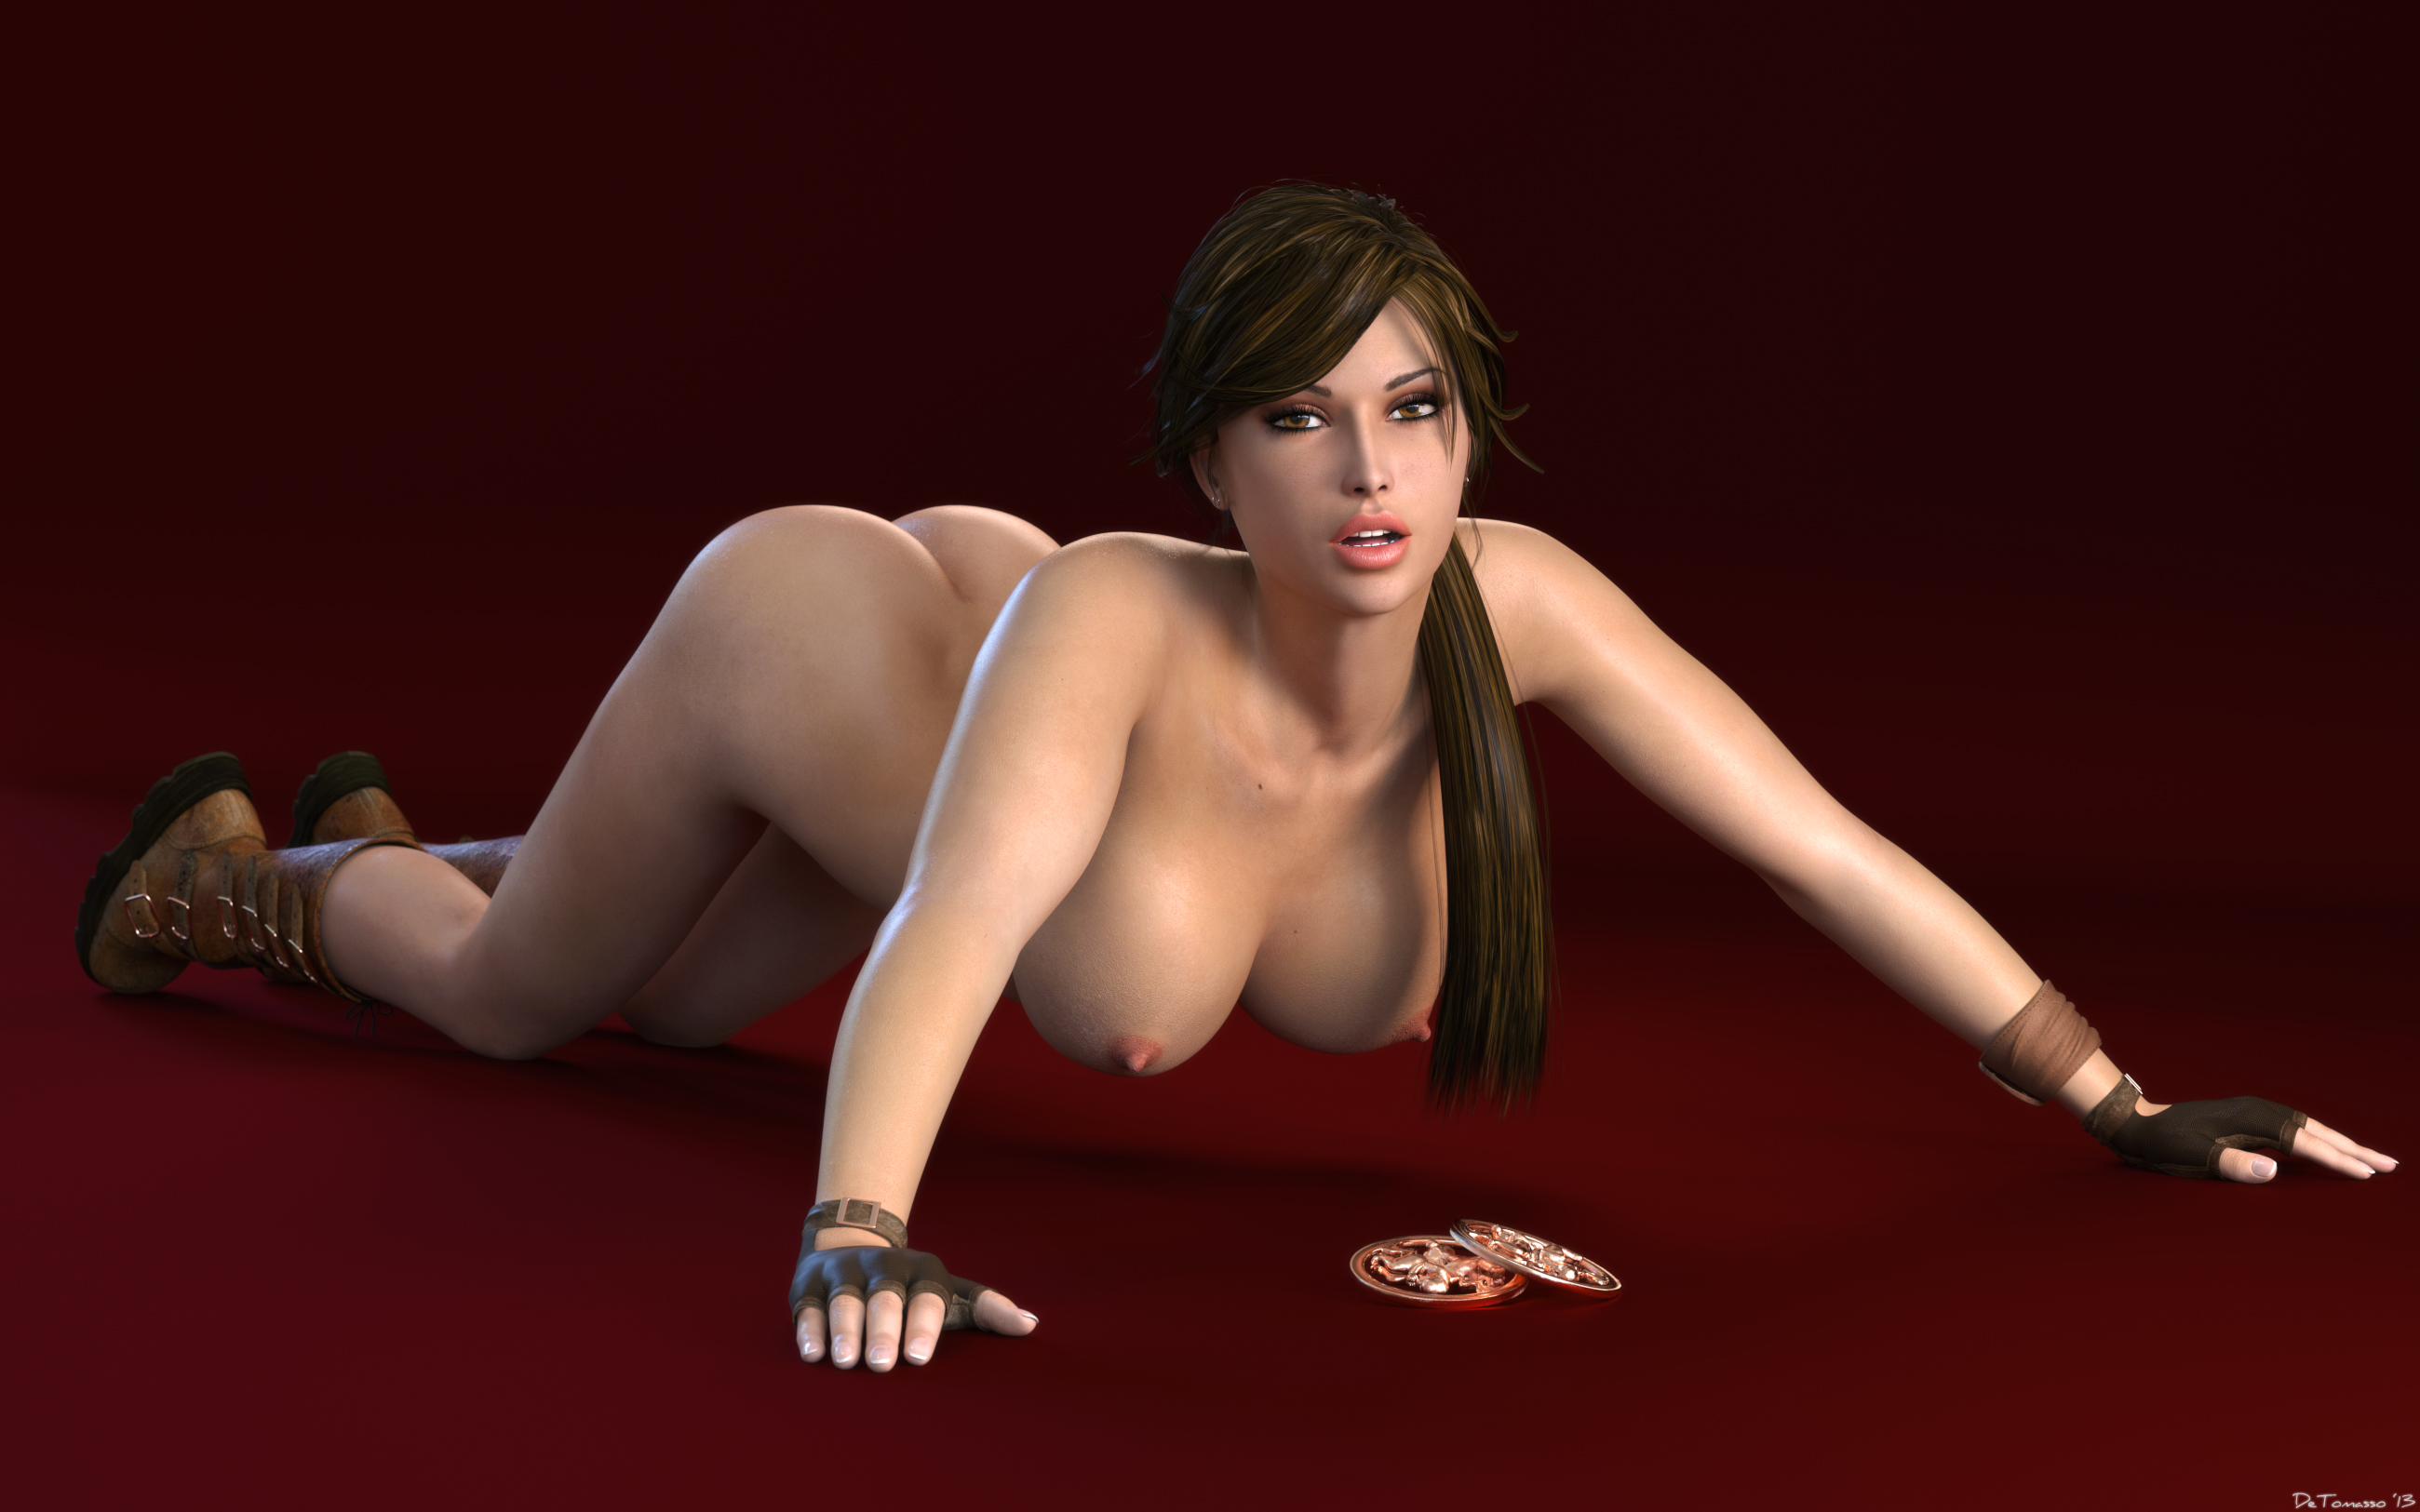 from Soren hot video game characters nude